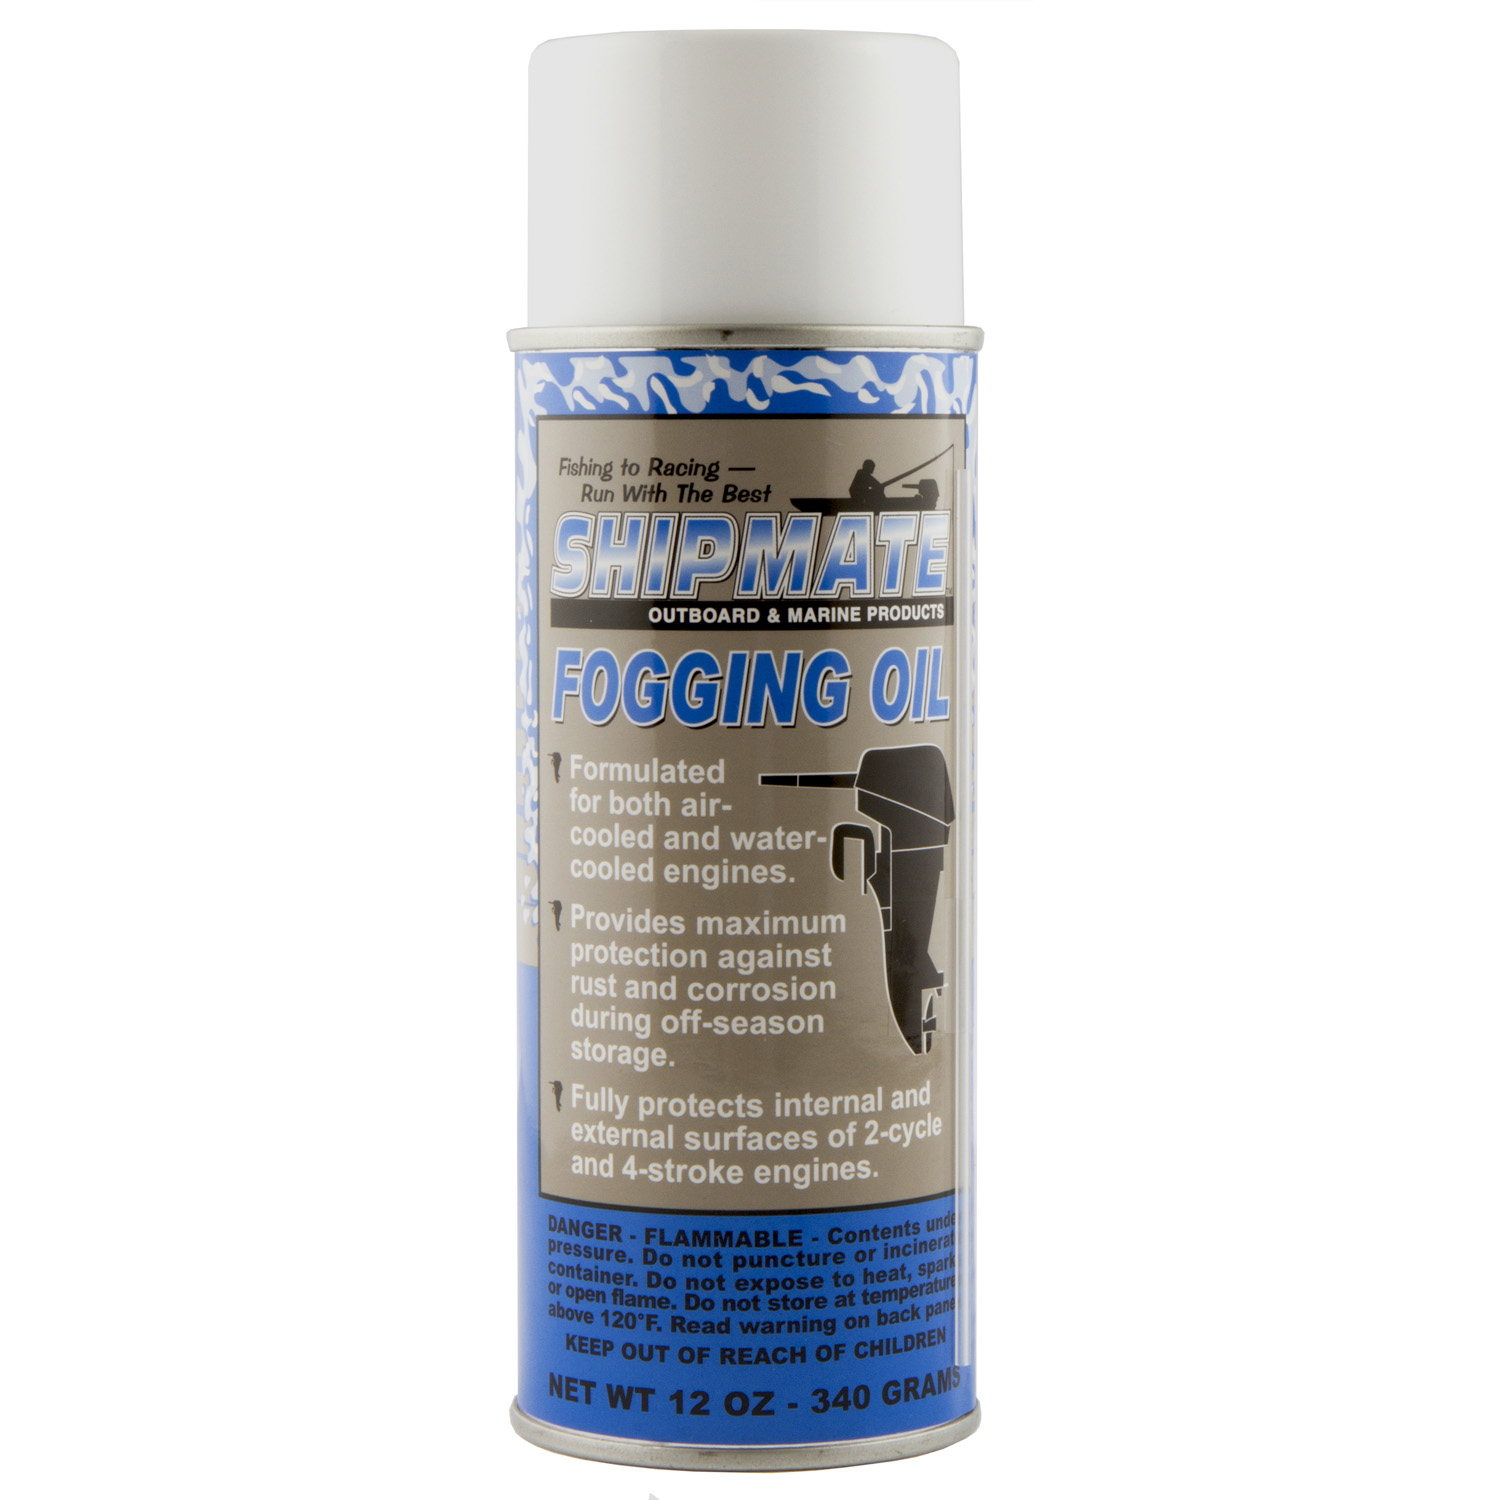 FOGGING AEROSOL 12OZ CAN